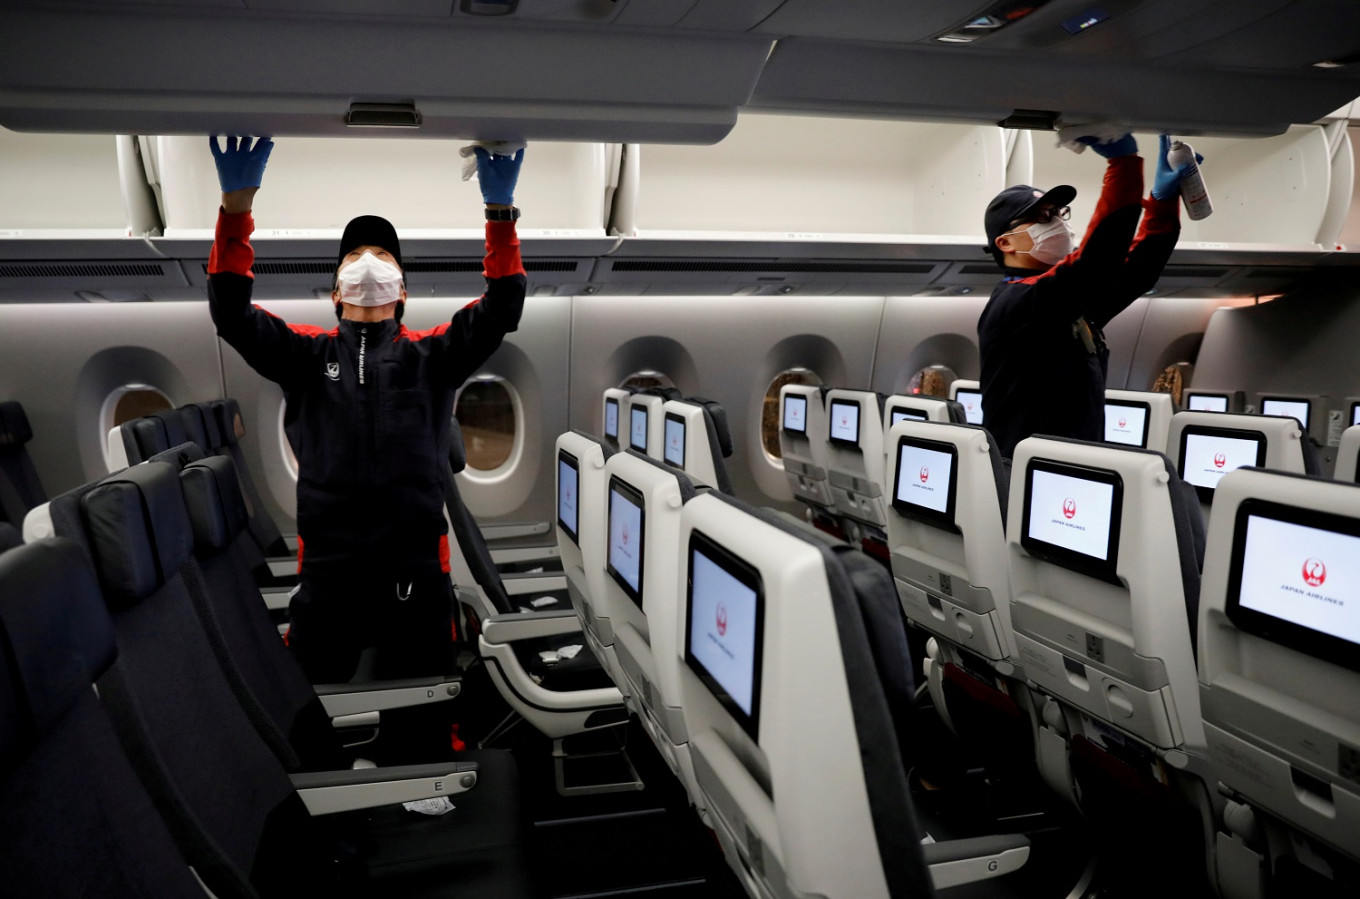 Another Japanese airline removes passenger refusing to wear face mask